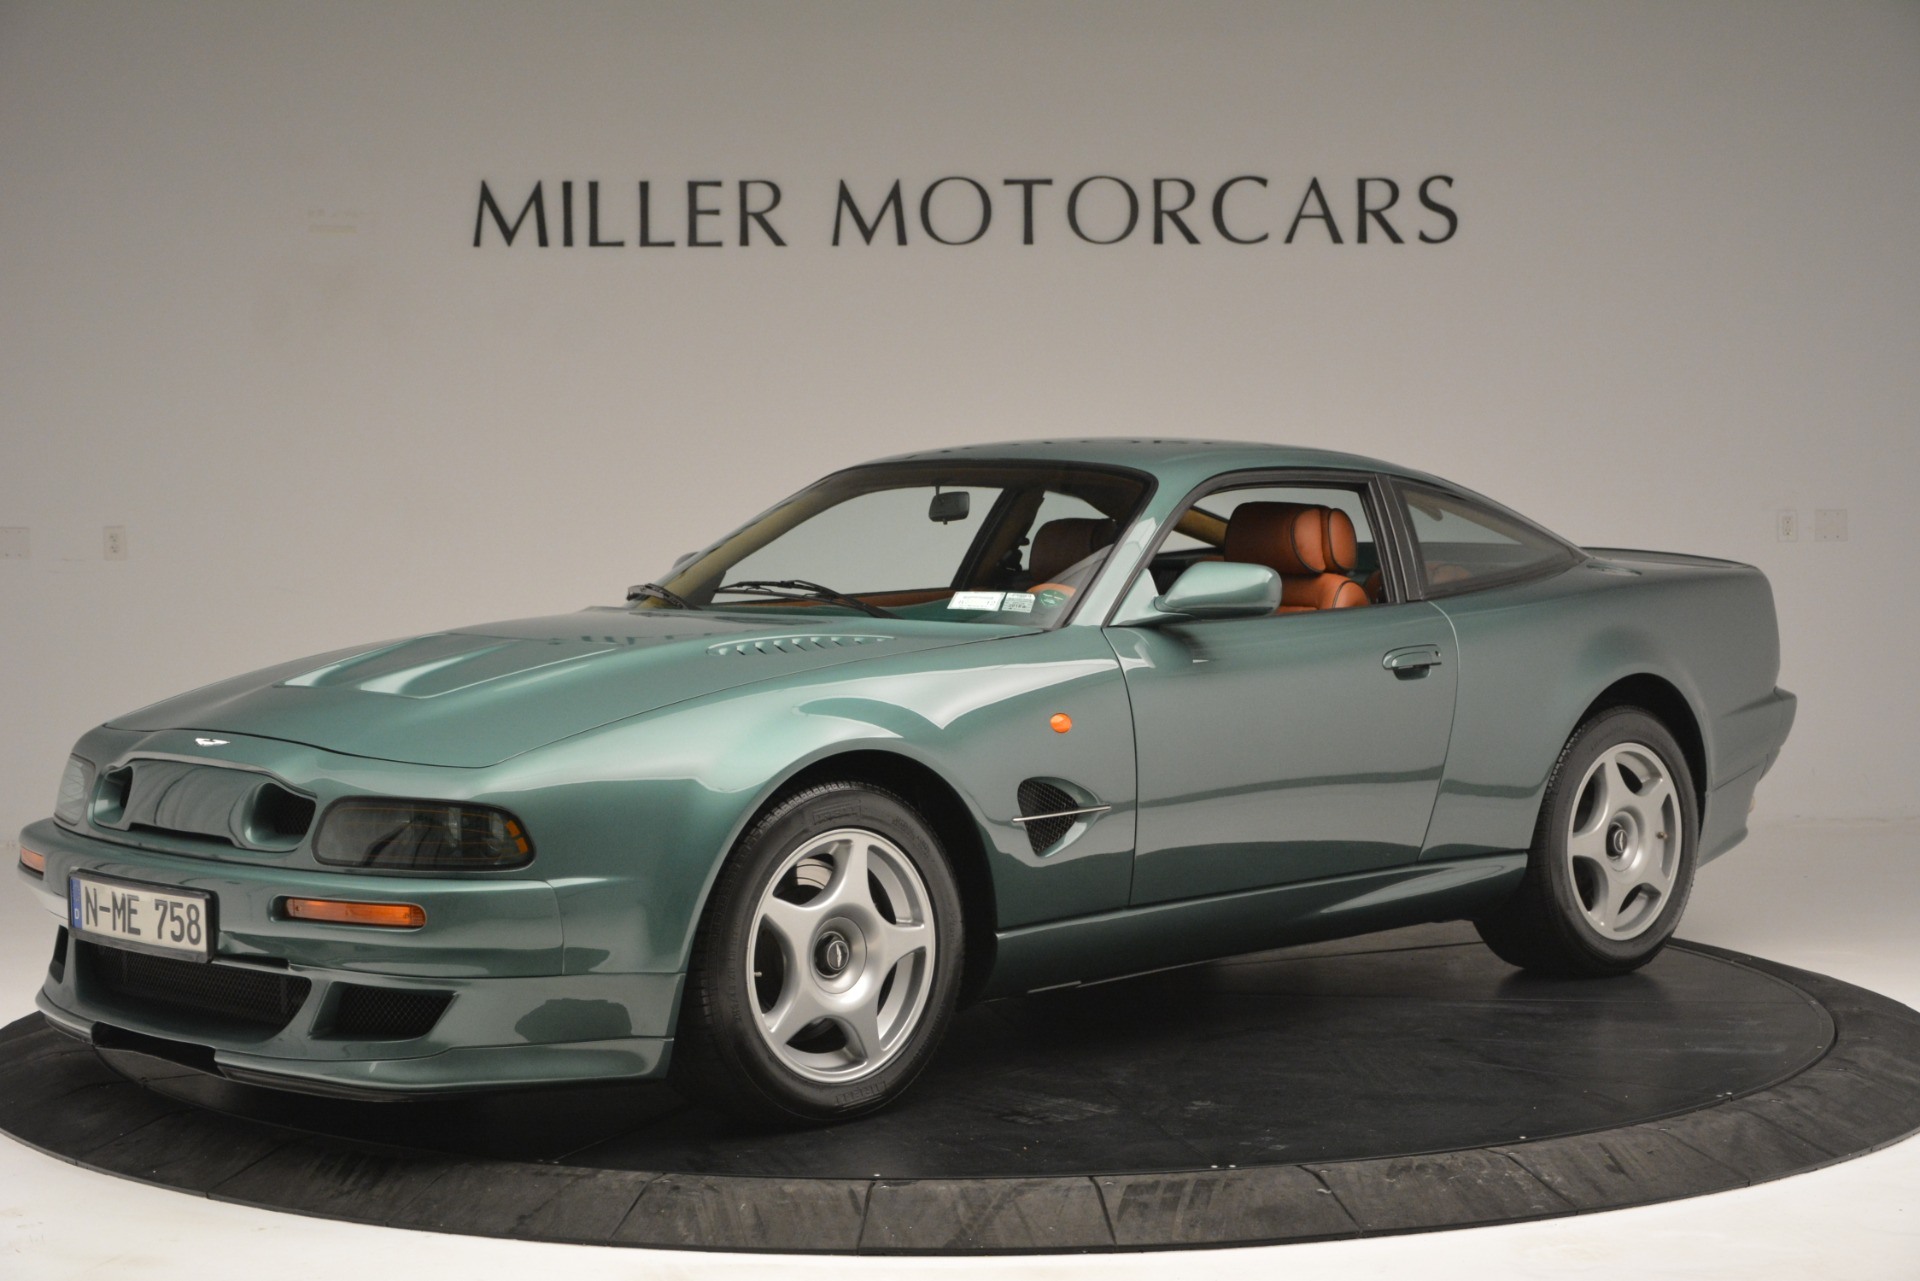 Used 1999 Aston Martin V8 Vantage Le Mans V600 Coupe for sale $550,000 at Maserati of Greenwich in Greenwich CT 06830 1